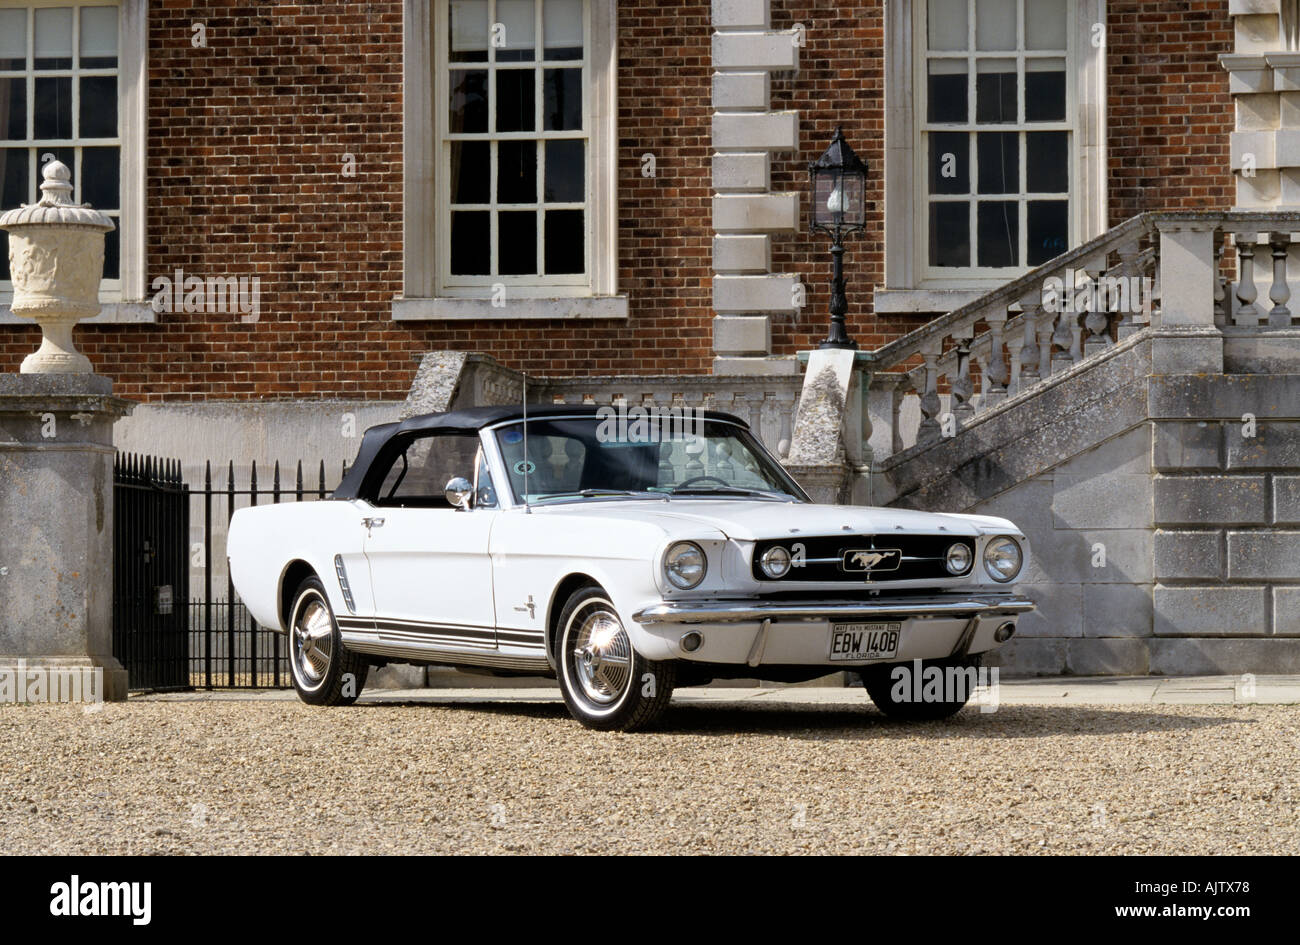 Ford Mustang Convertible Of 1964 And A Half Stock Photo 4835959 Alamy